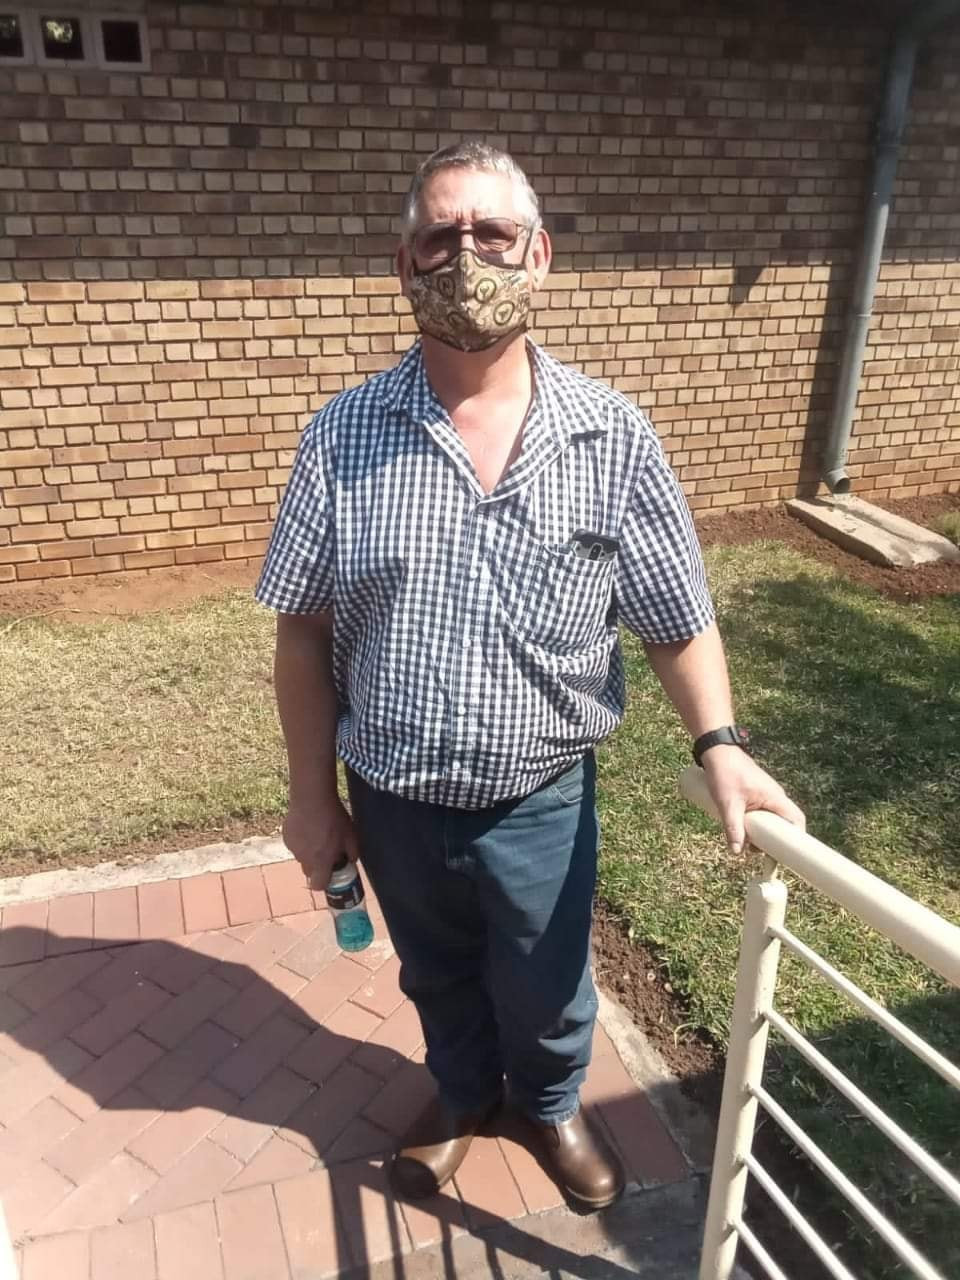 Man sentenced in South Africa for calling his colleagues